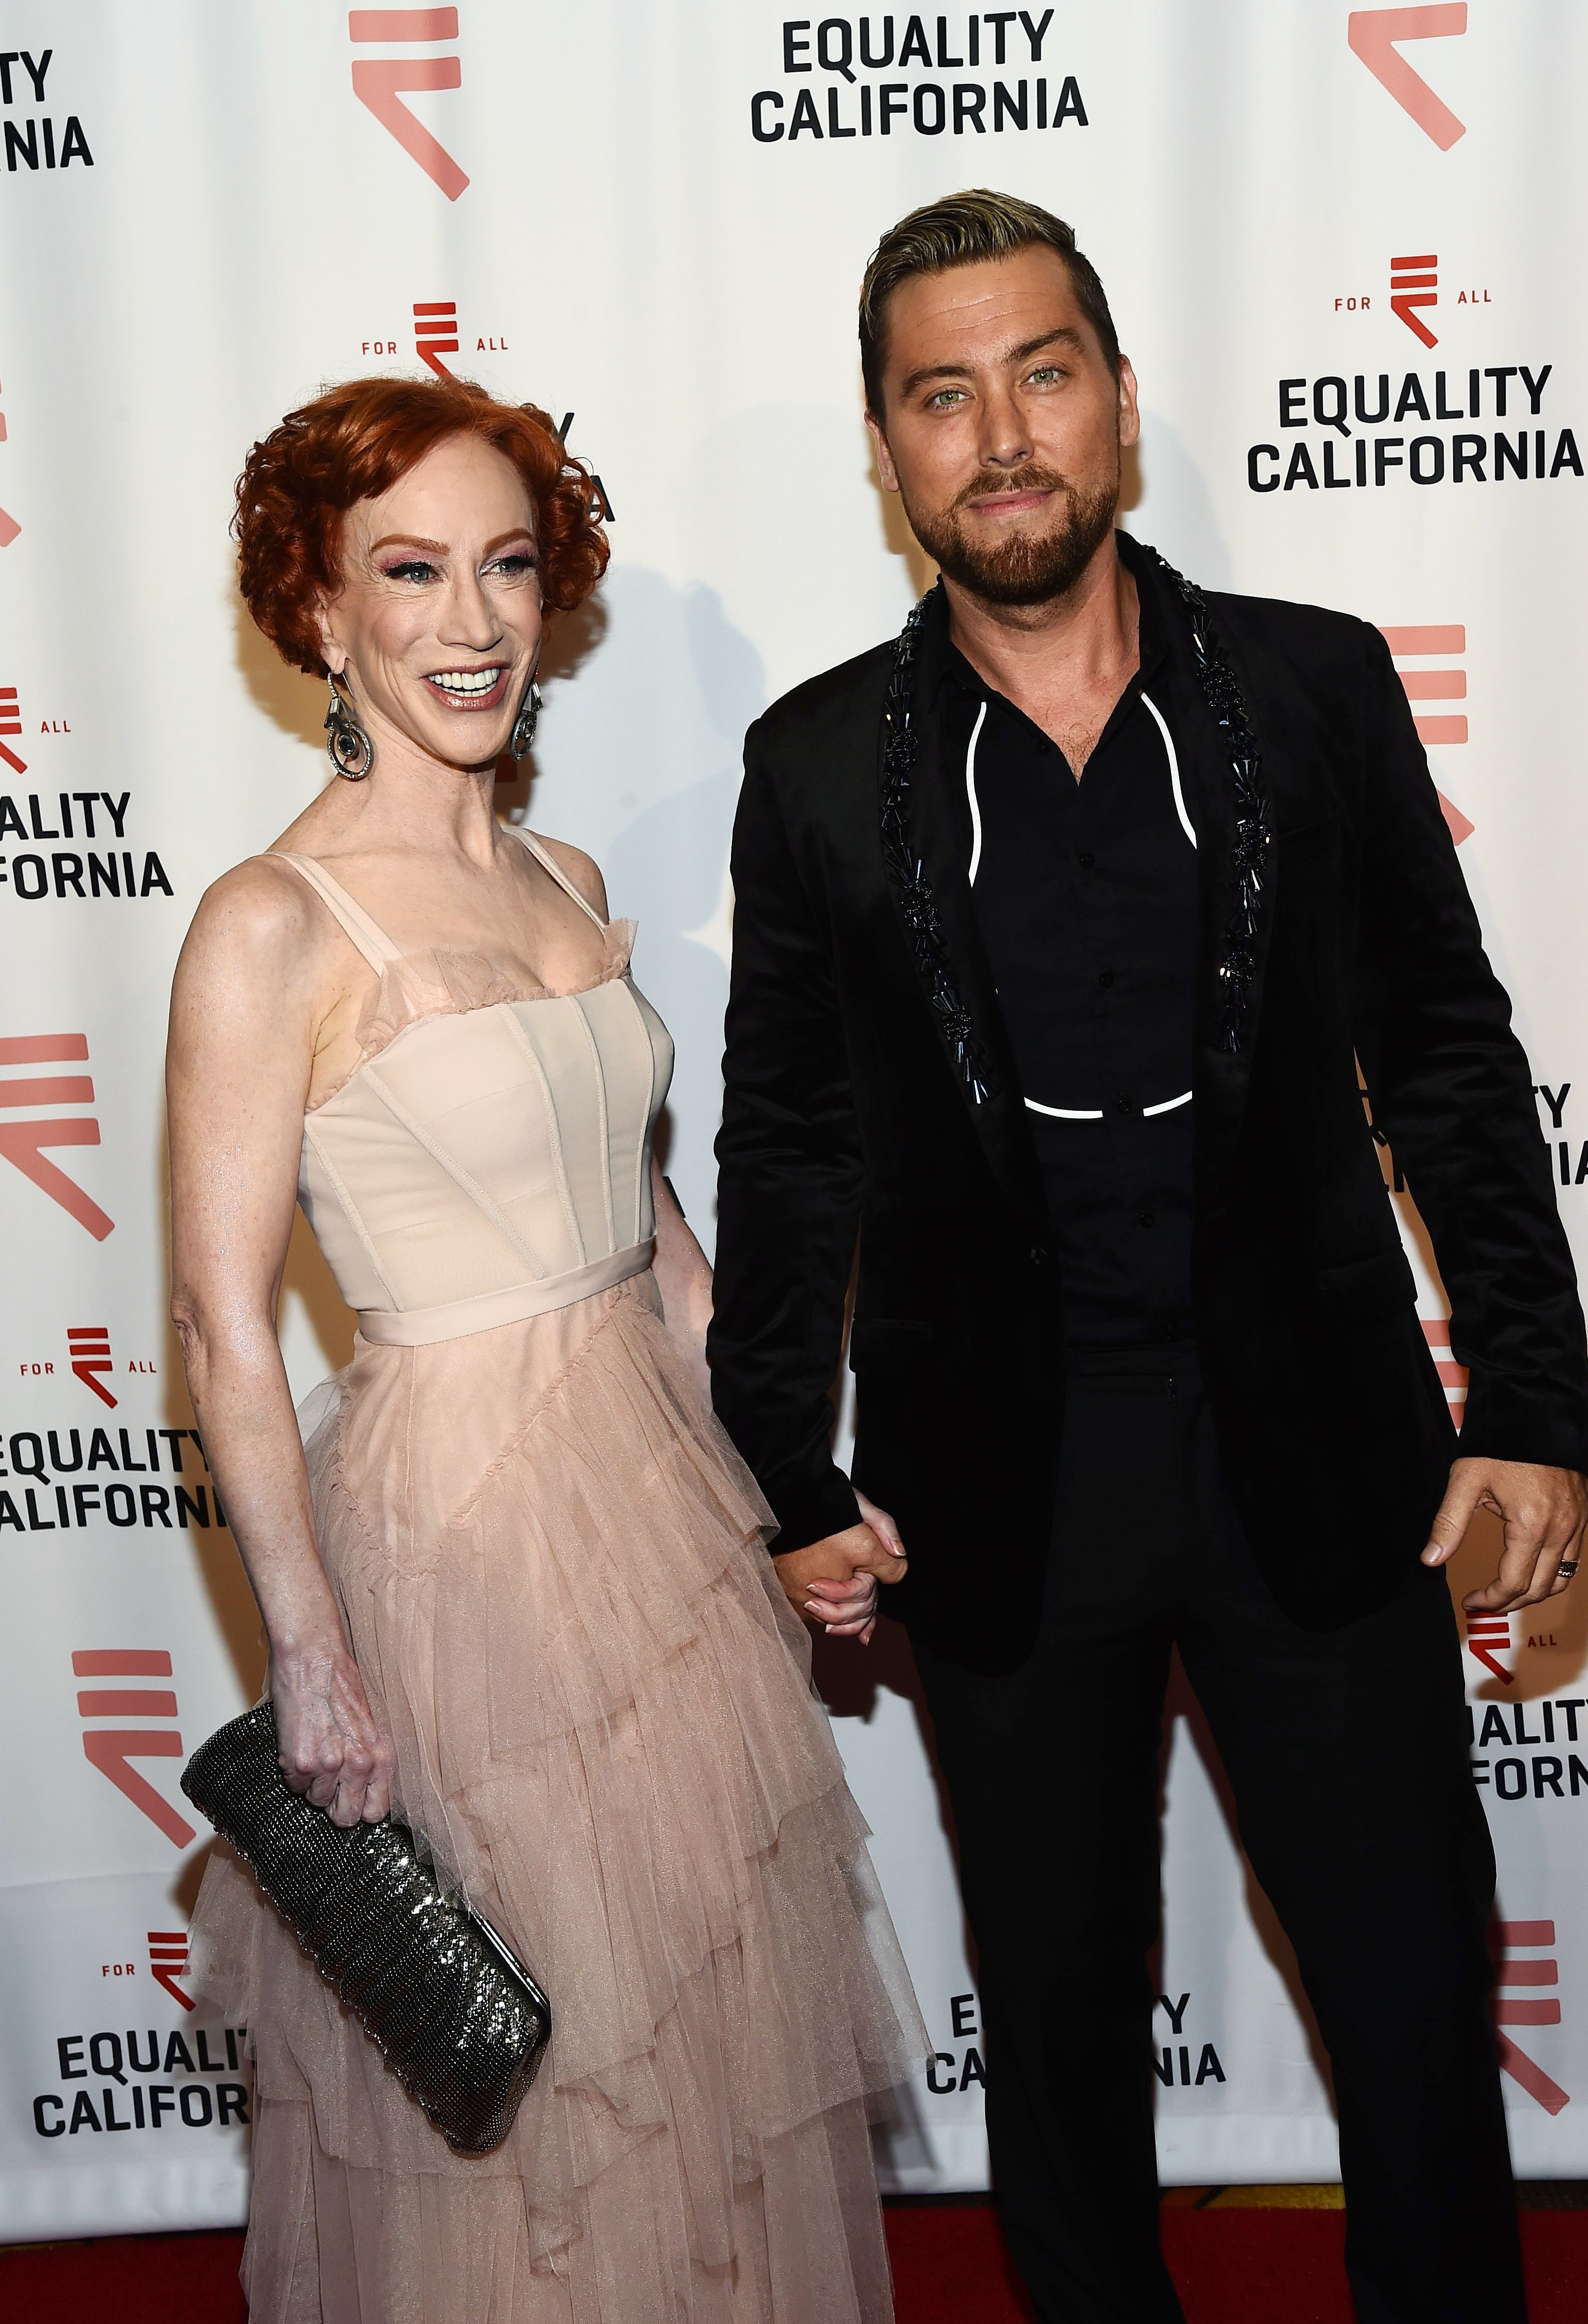 Kathy Griffin and Lance Bass attend the Los Angeles Equality Awards on Sept. 29, 2018.